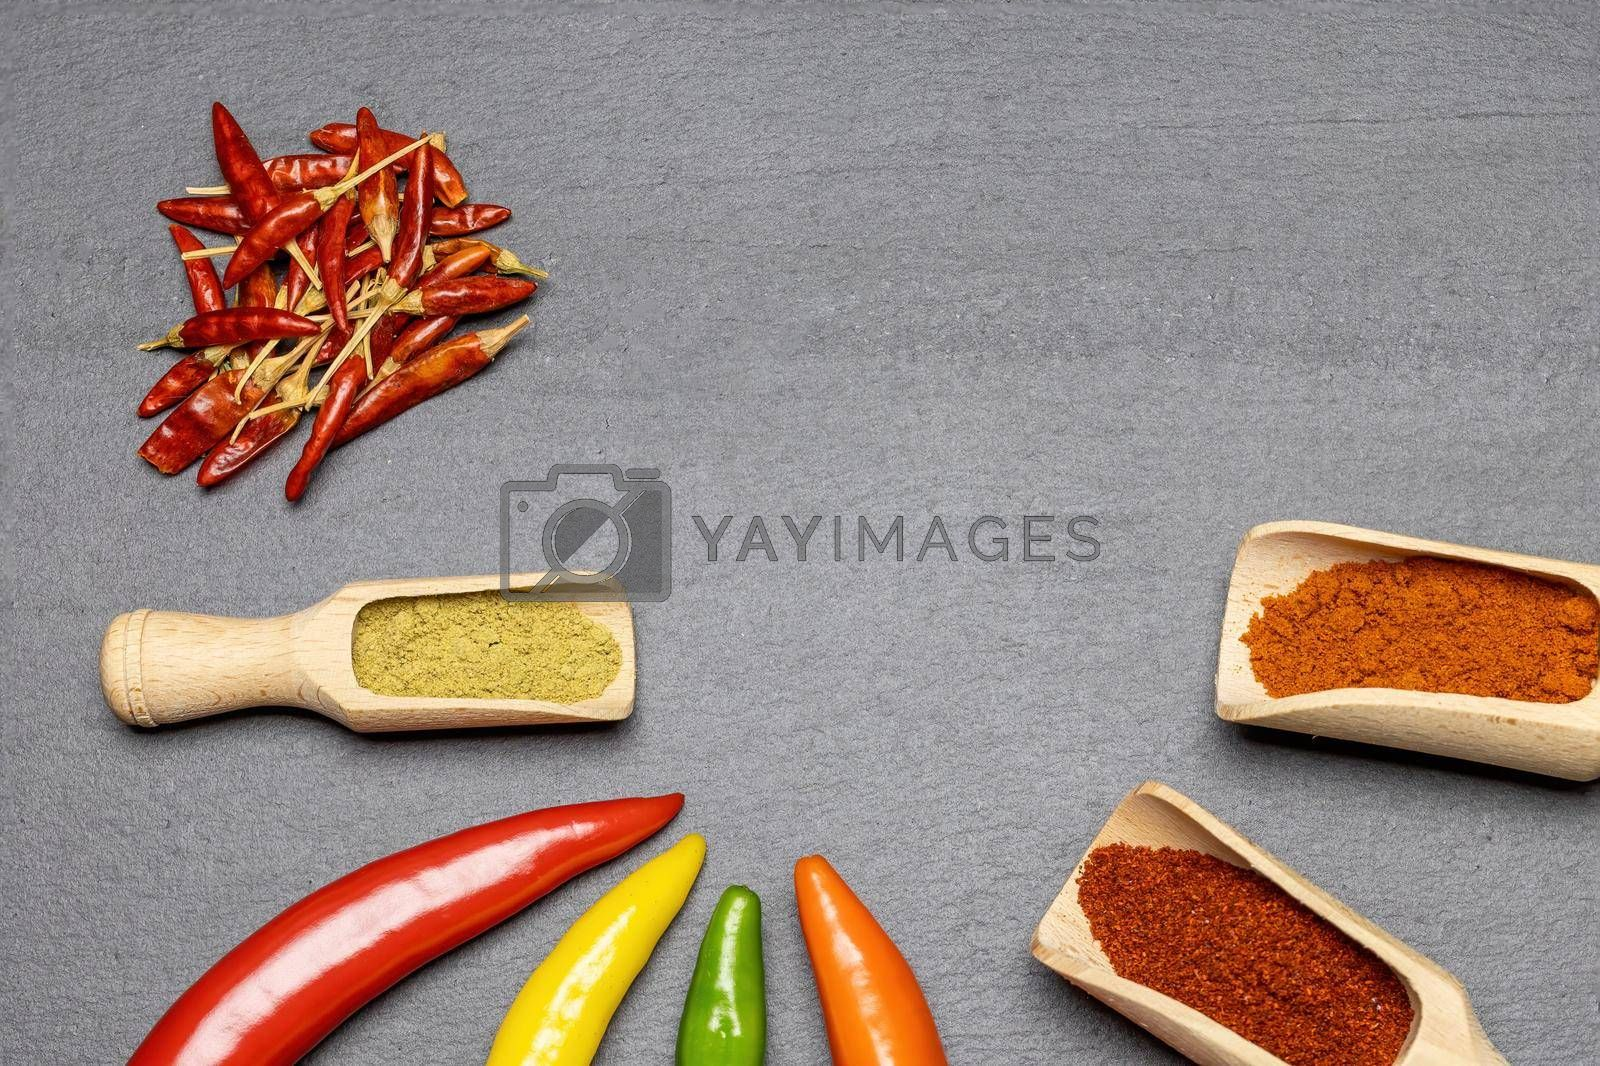 Royalty free image of Multicolored fresh chilli peppers and dried and ground chilli on the desk. by Frank11